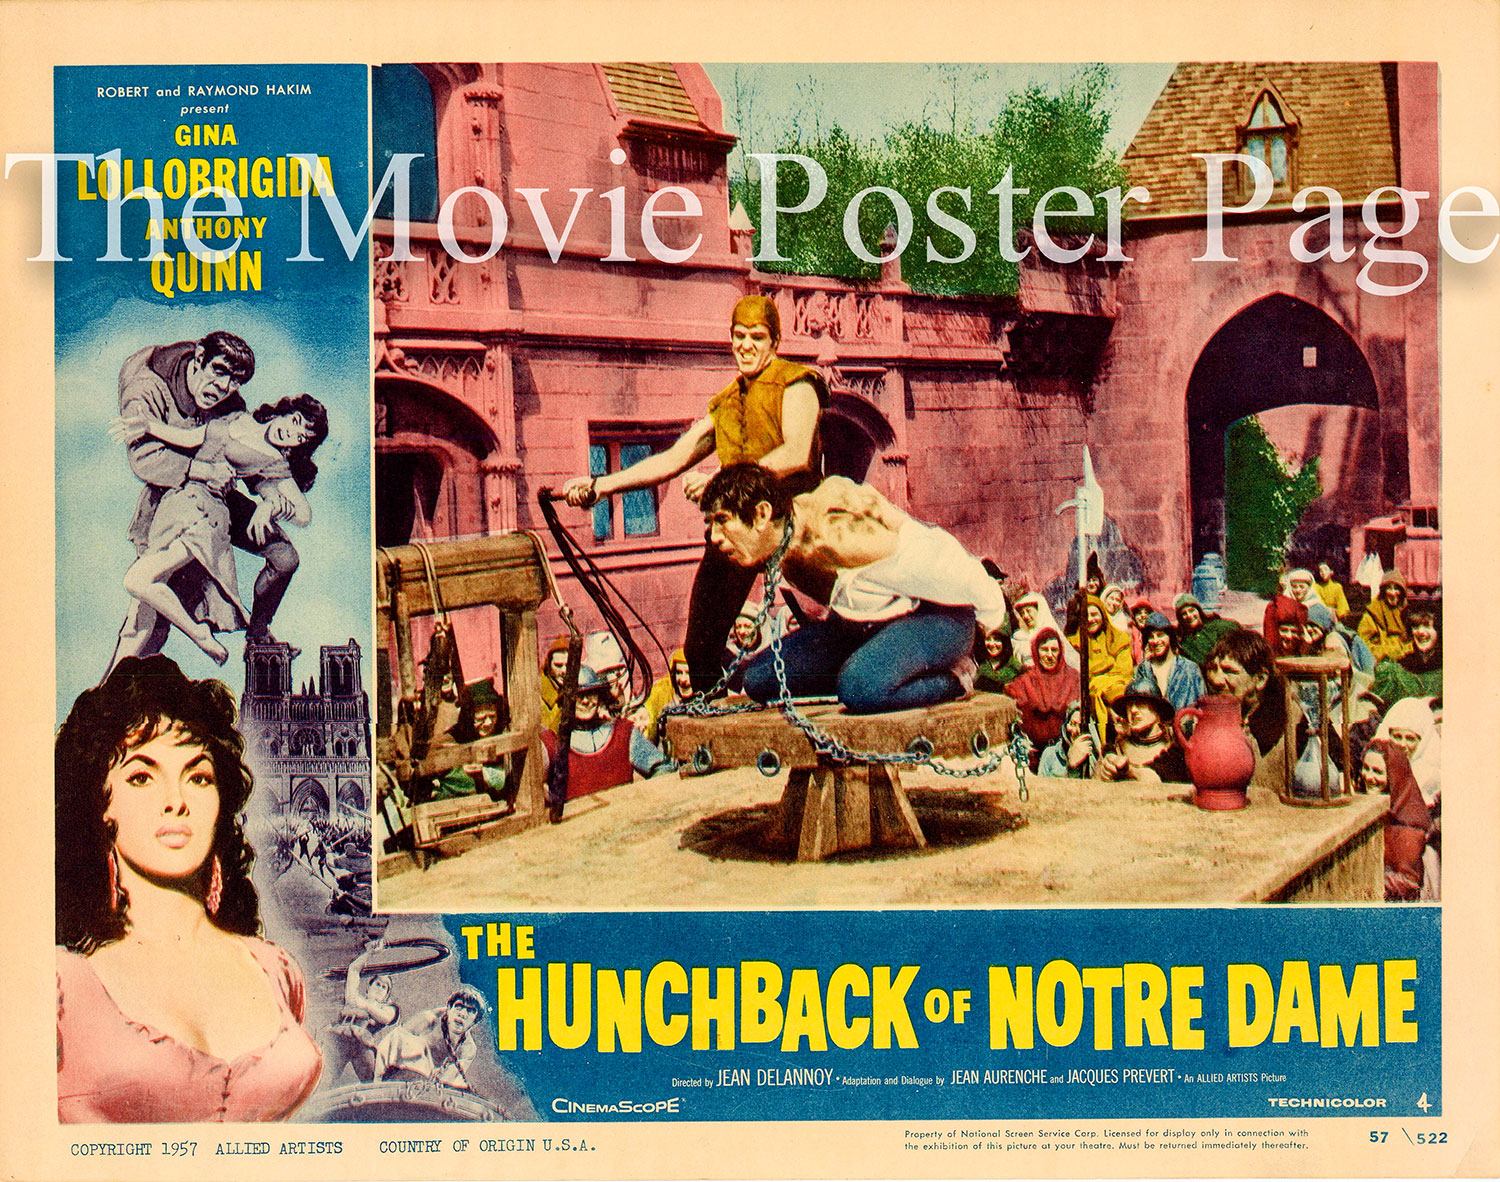 Pictured is a US promotional lobby card for the 1957 Jean Delannoy film The Hunchback of Notre Dame starring Anthony Quinn and Gina Lollobrigida.